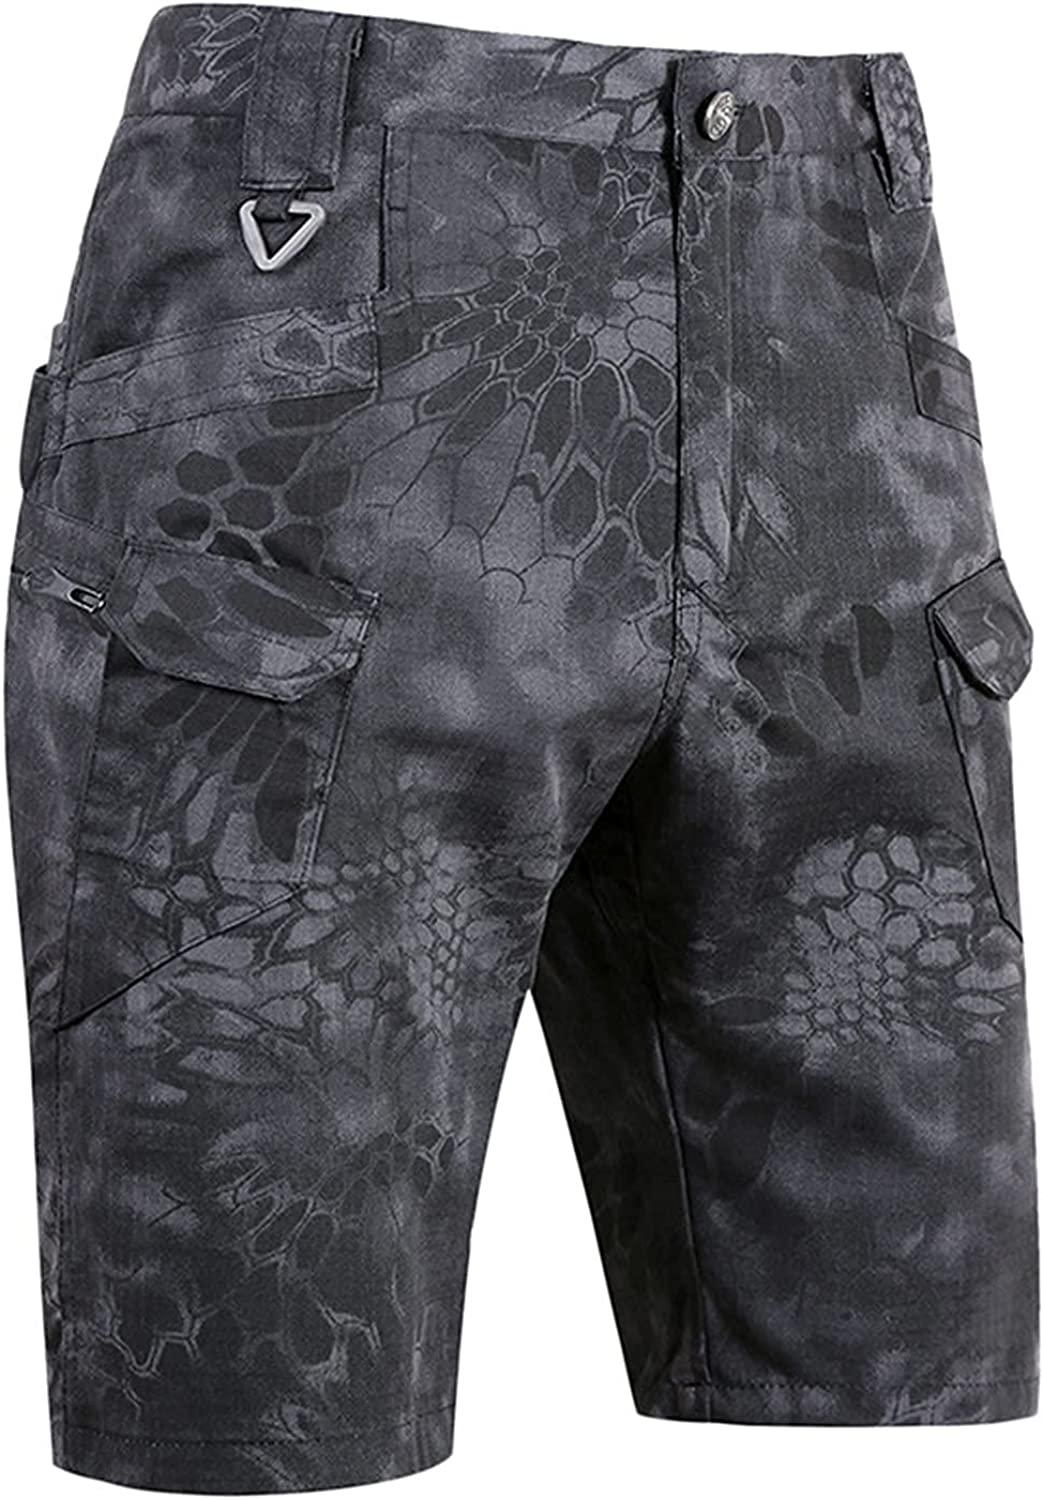 VAIFTILNO Mens Camo Cargo Shorts Pants Relaxed Fit Summer Loose Pants Peinted Shorts Trousers Breathable Comfy Short Trousers